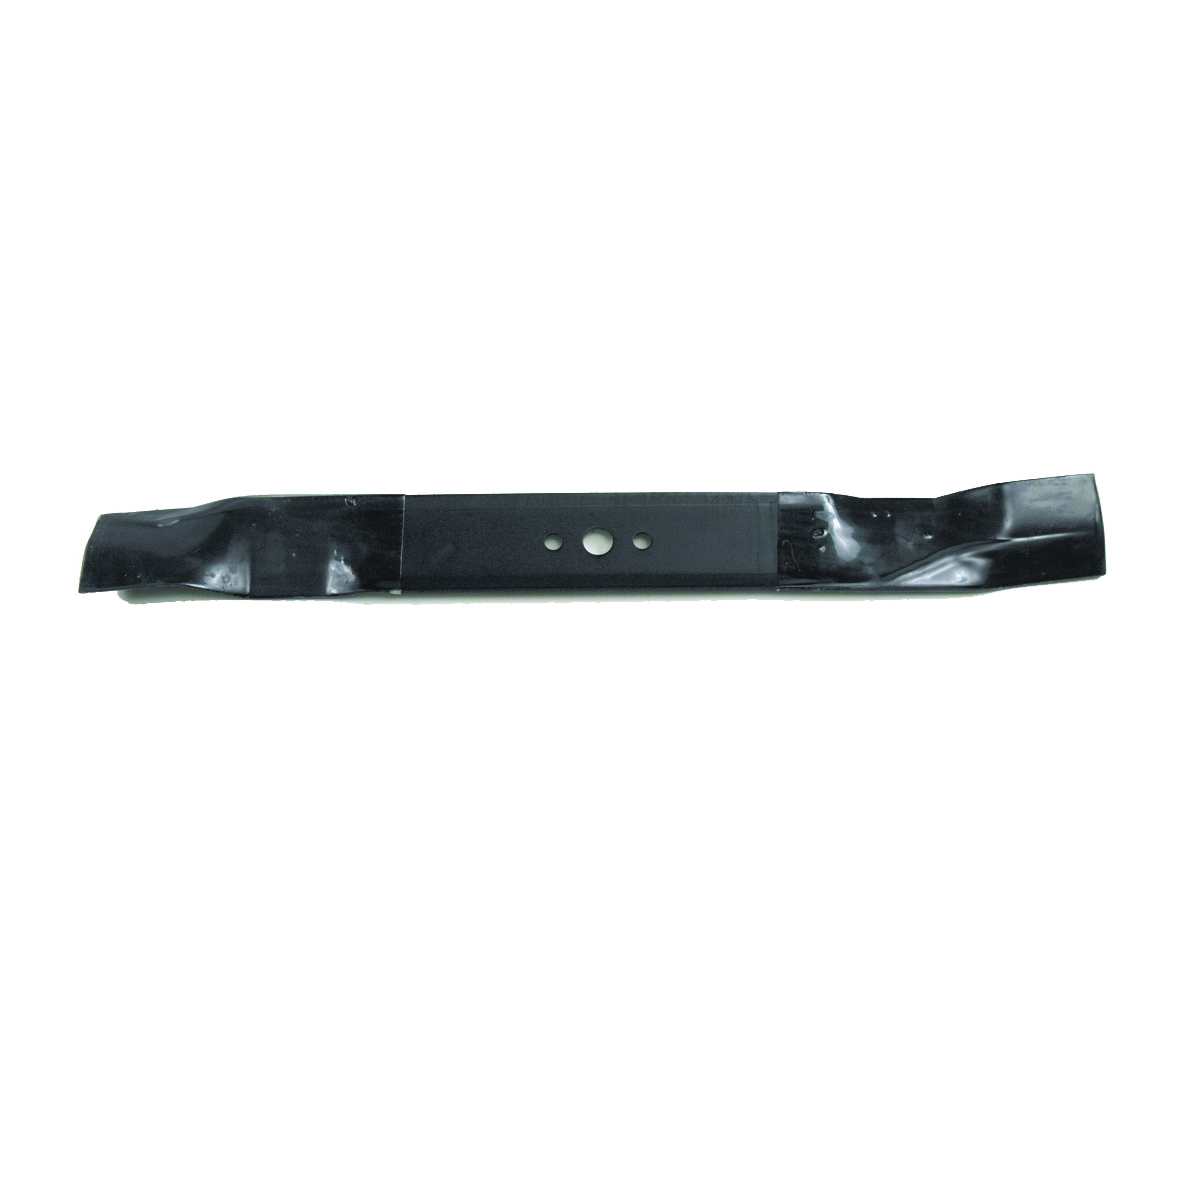 Picture of ARNOLD 490-100-0025 Mulching Blade, 22 in L